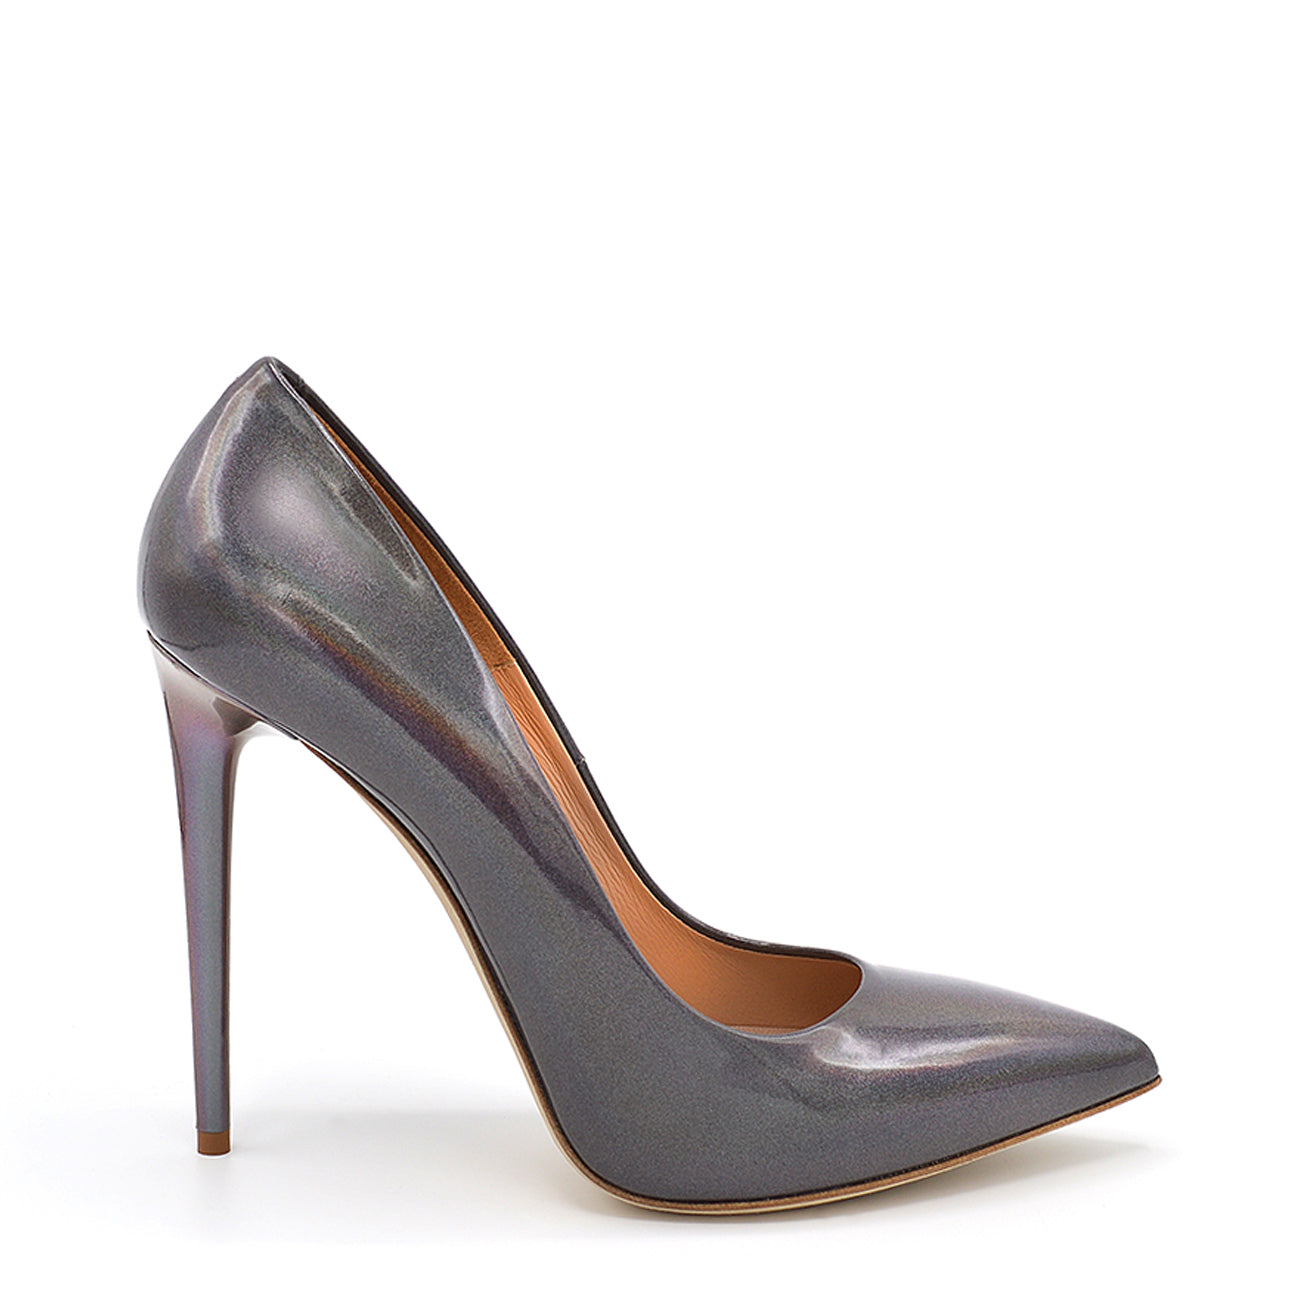 Queen. <br> Stiletto heel steel gray patent leather pumps